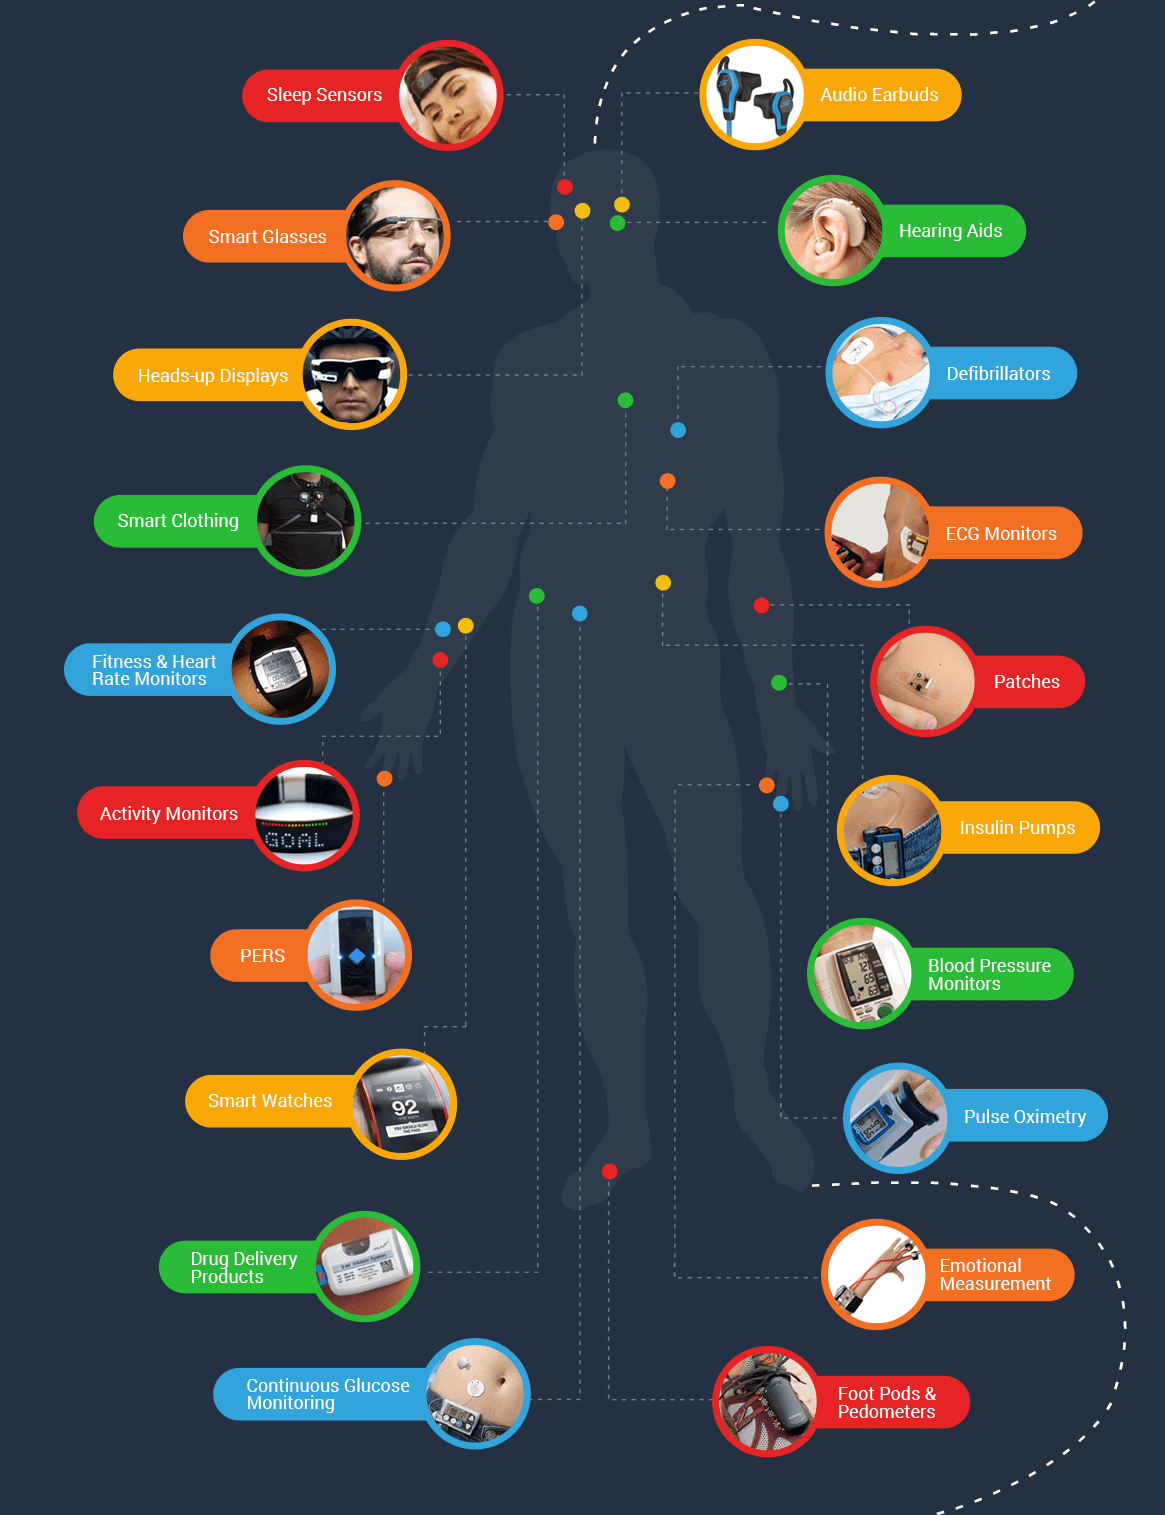 wearables-in-healthcare-infographic-hitconsultant.png